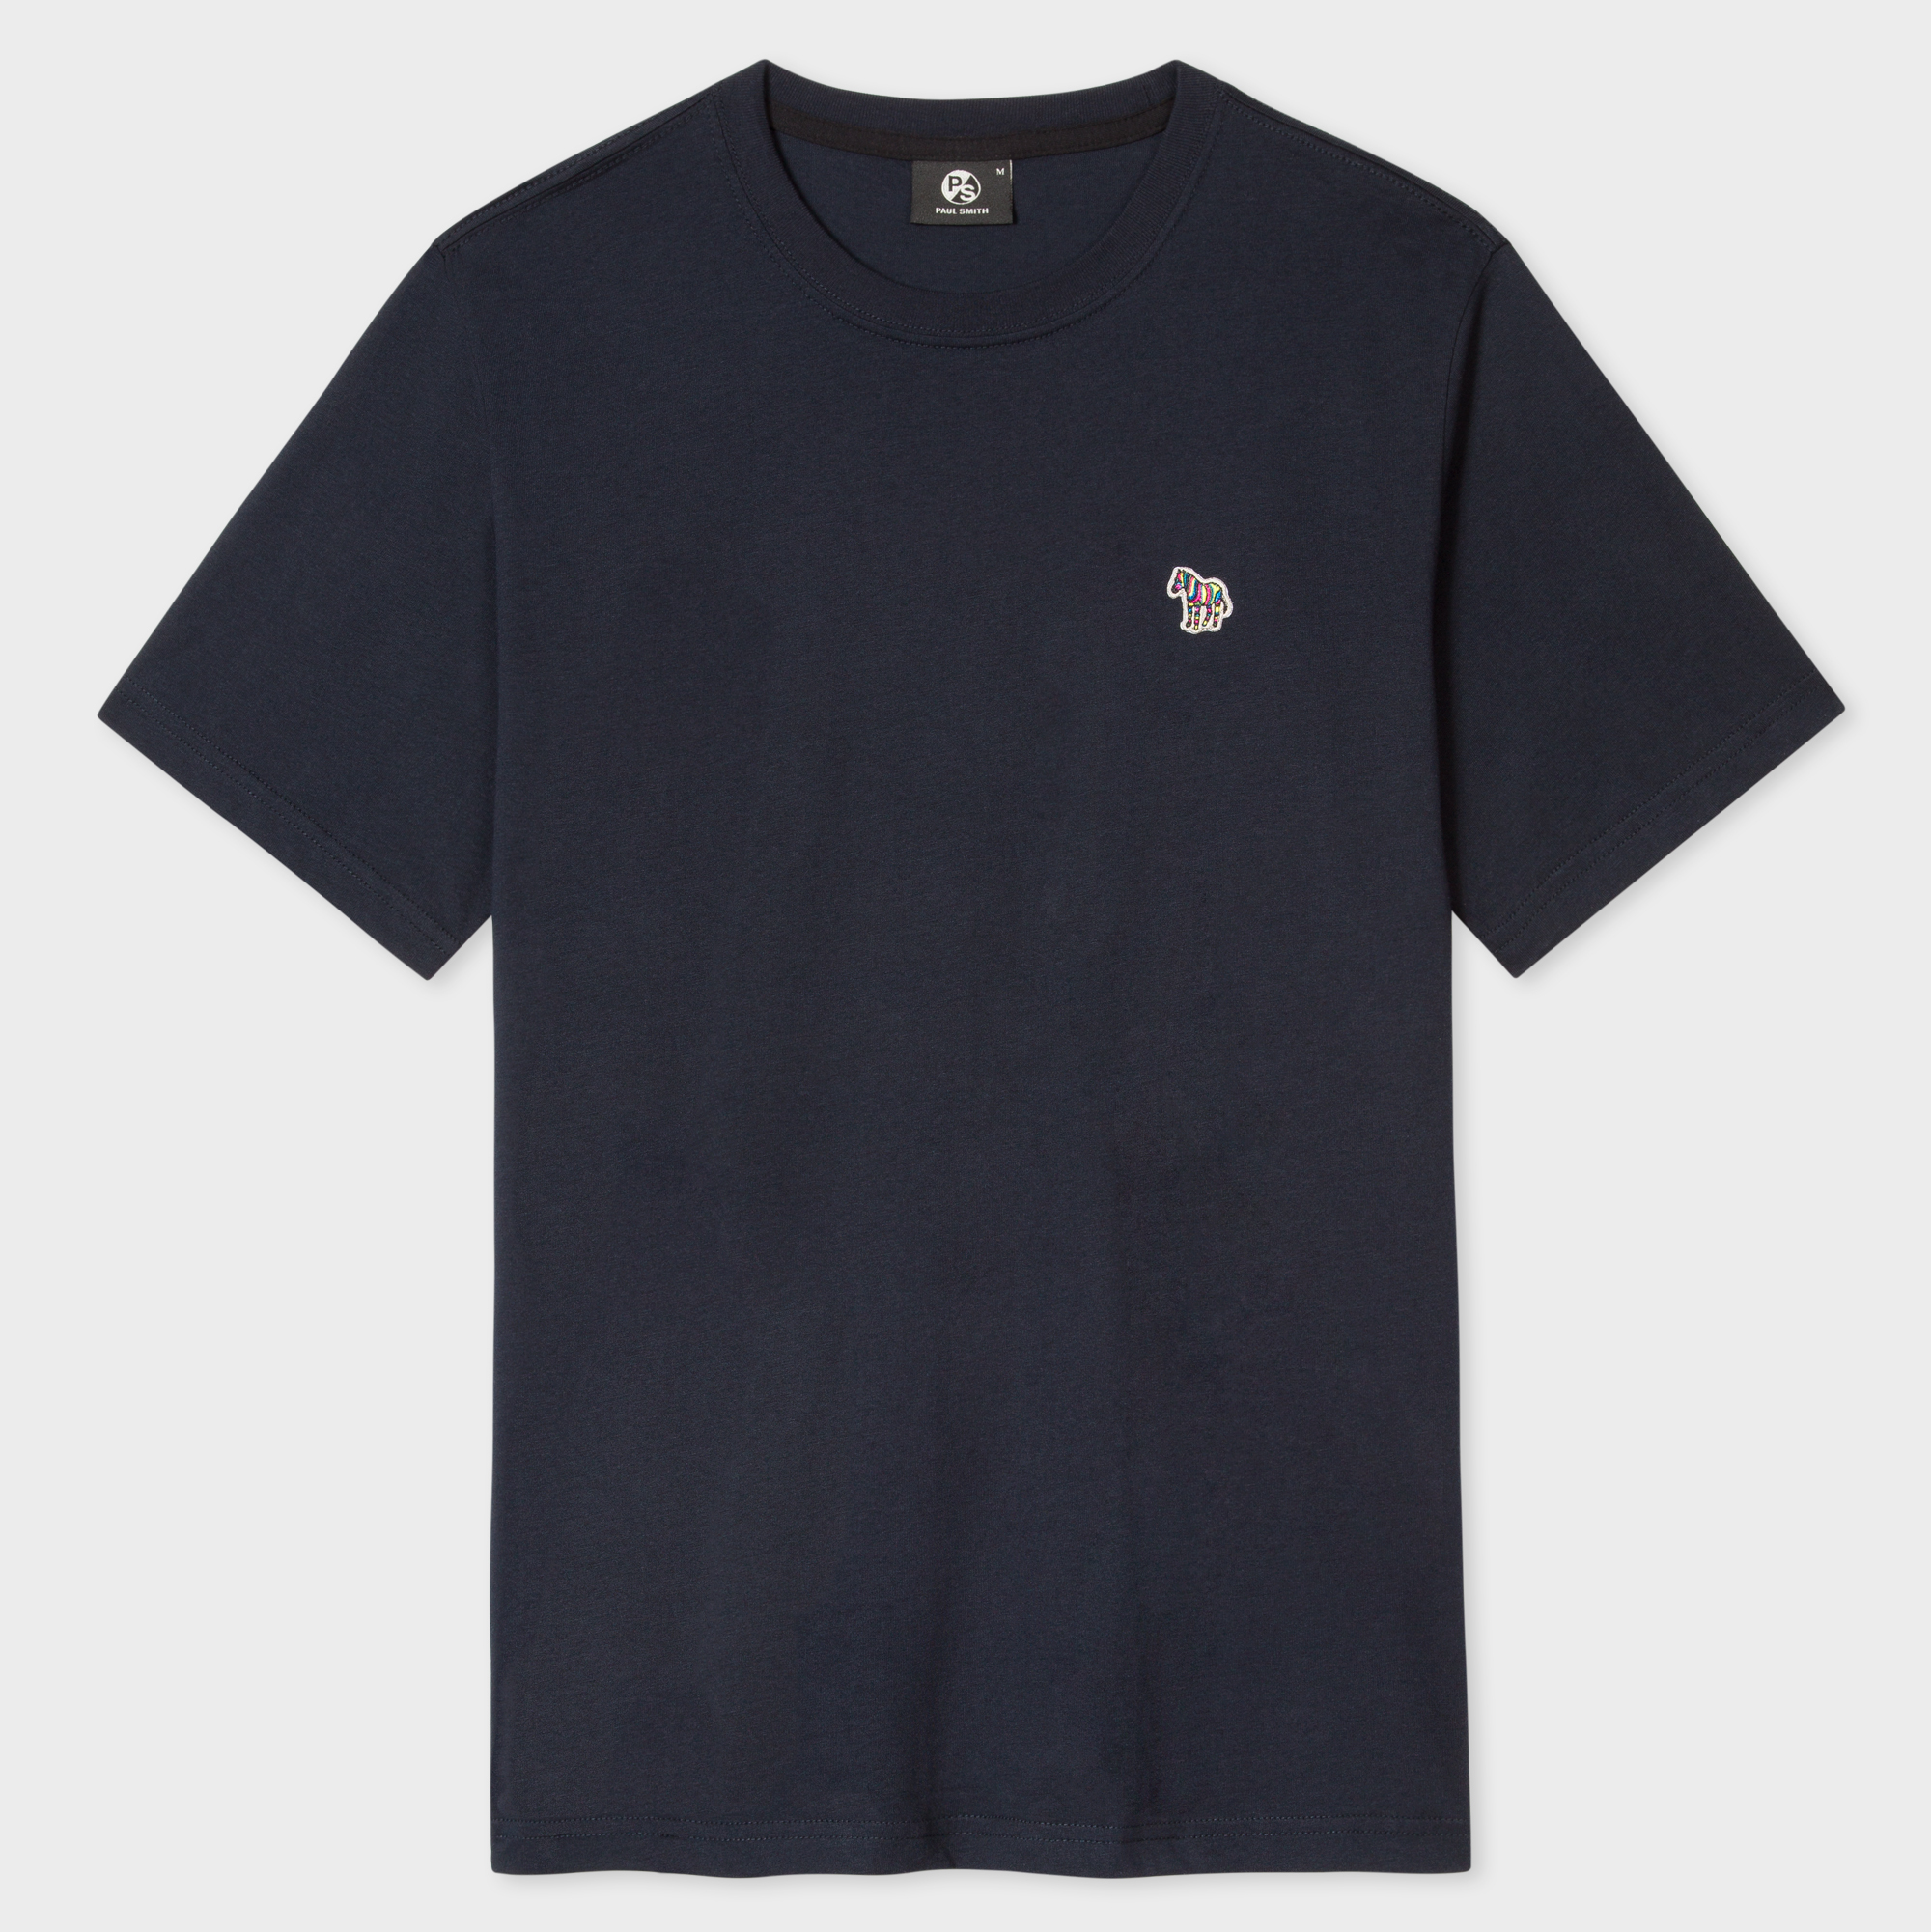 Paul Smith Men's Navy Organic-Cotton Zebra Logo T-Shirt